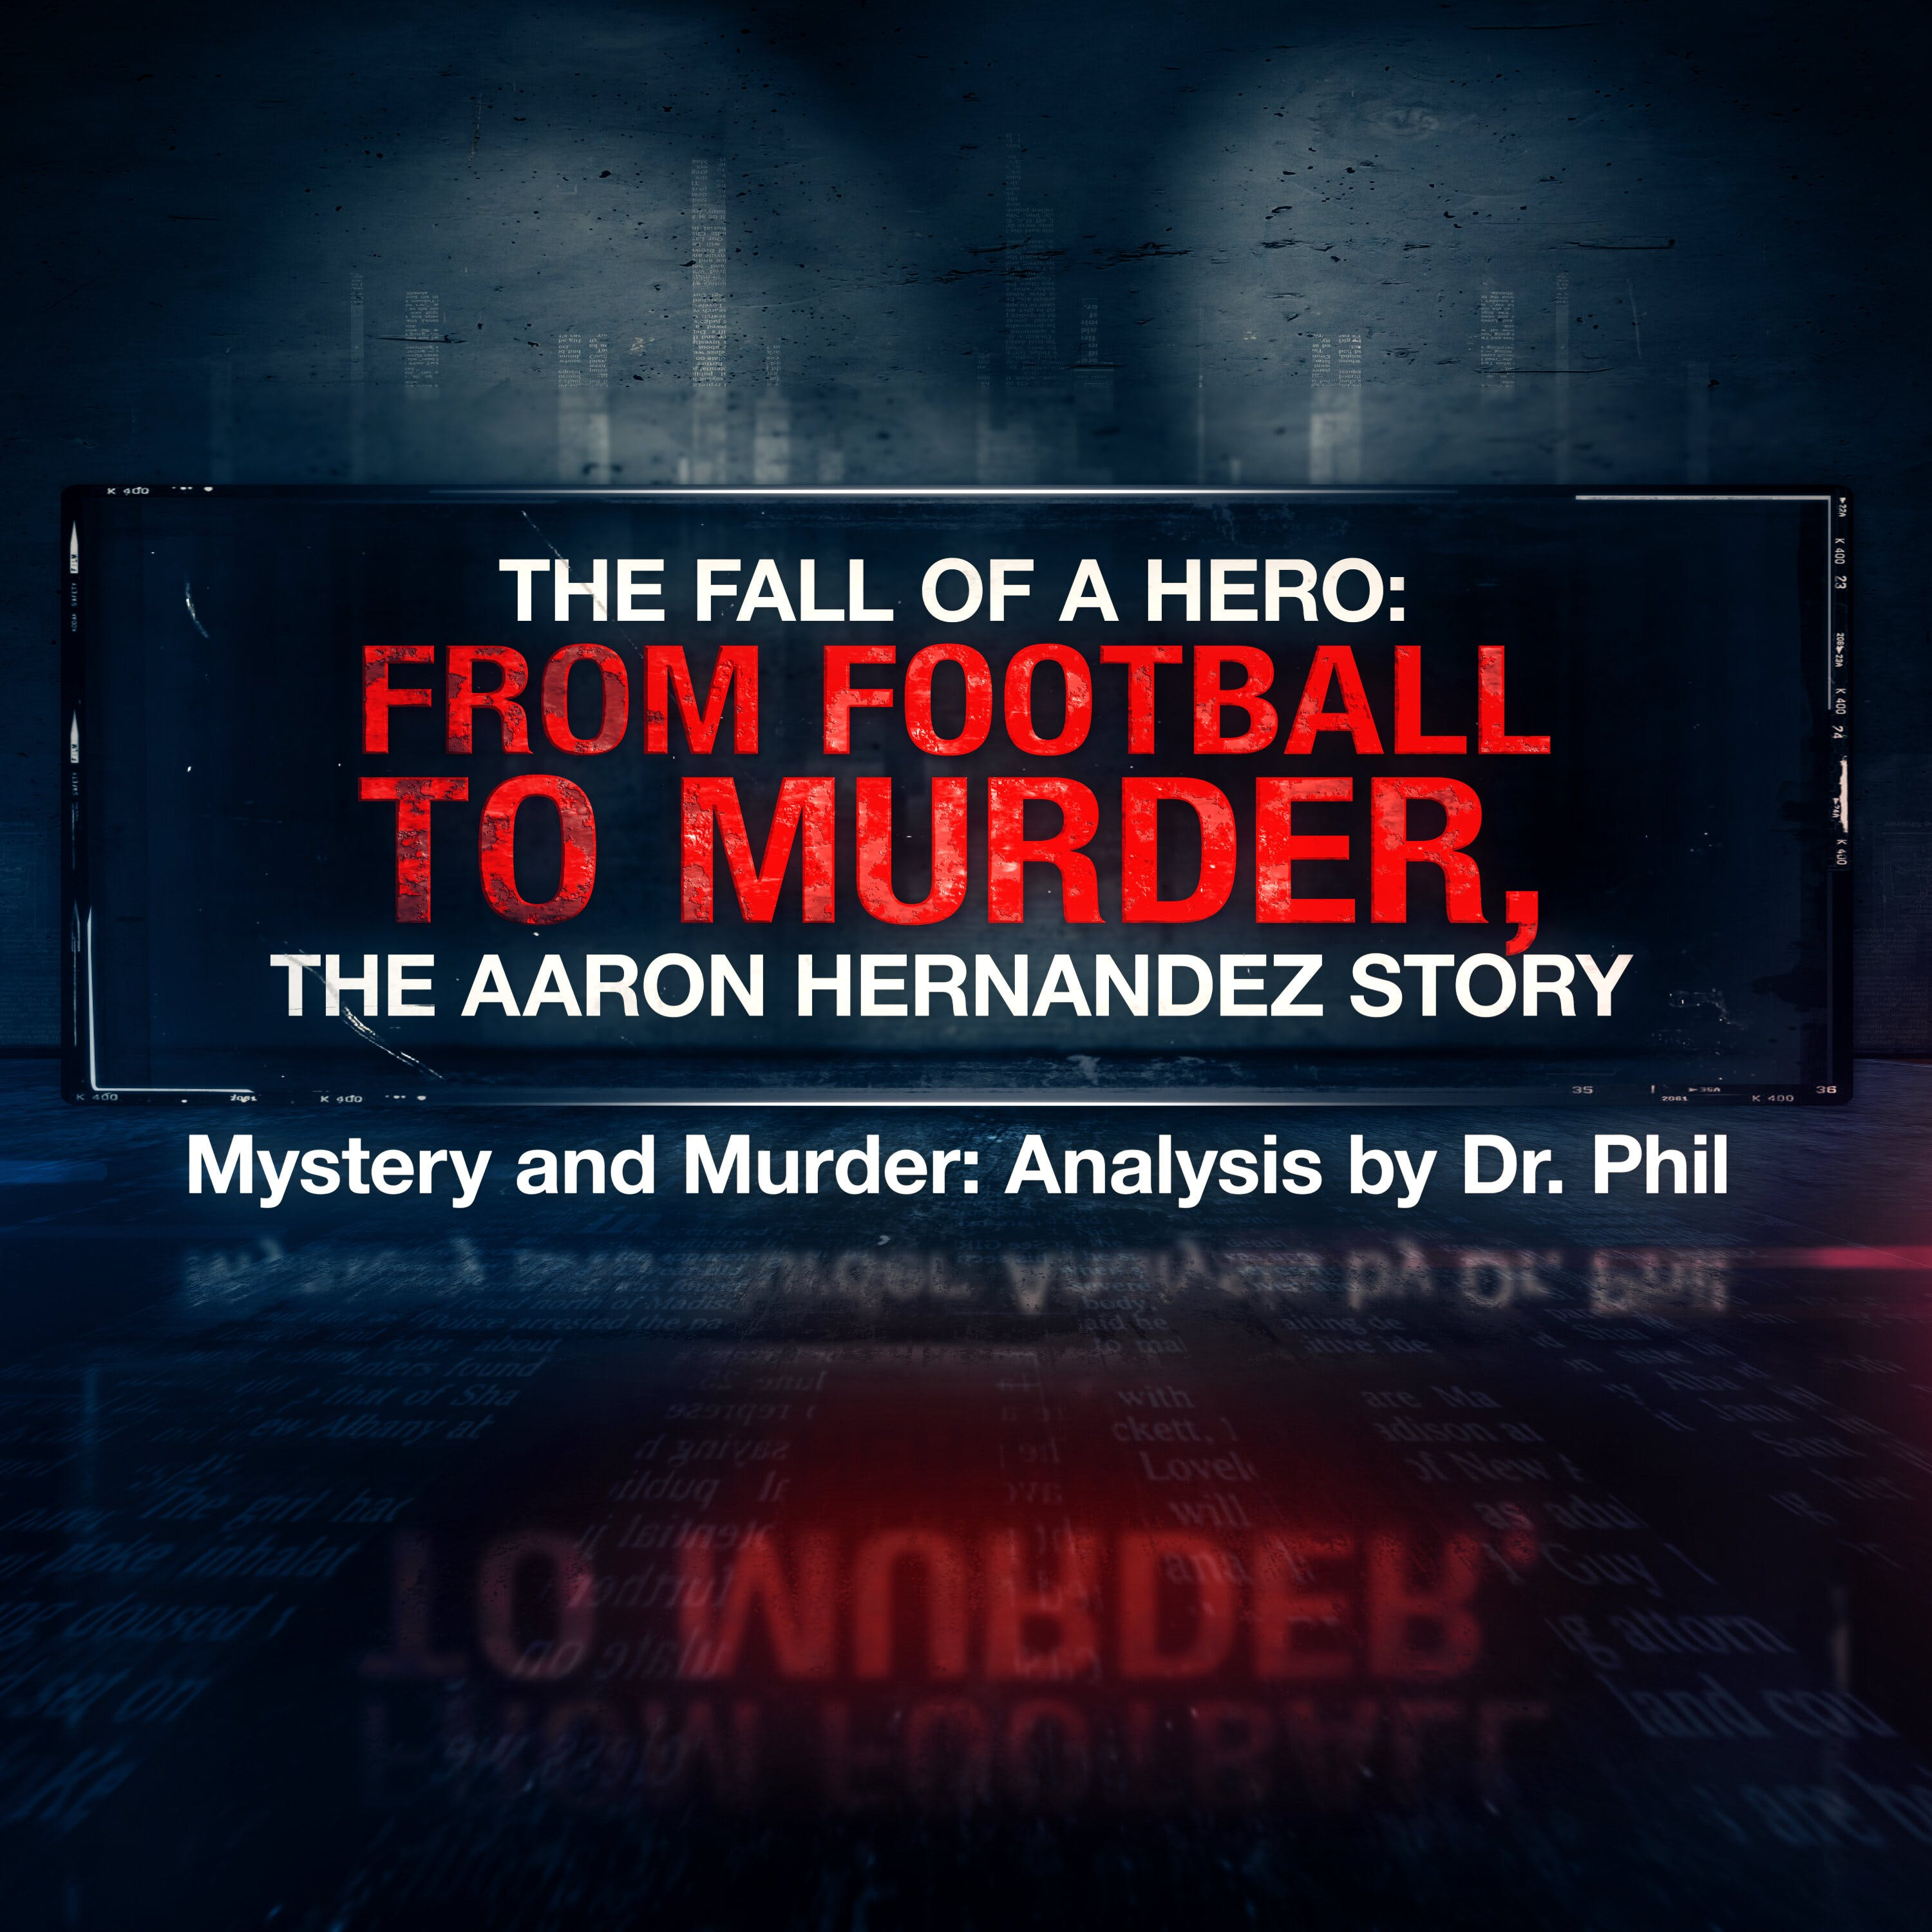 S8E1: The Fall of A Hero: From Football to Murder, The Aaron Hernandez Story